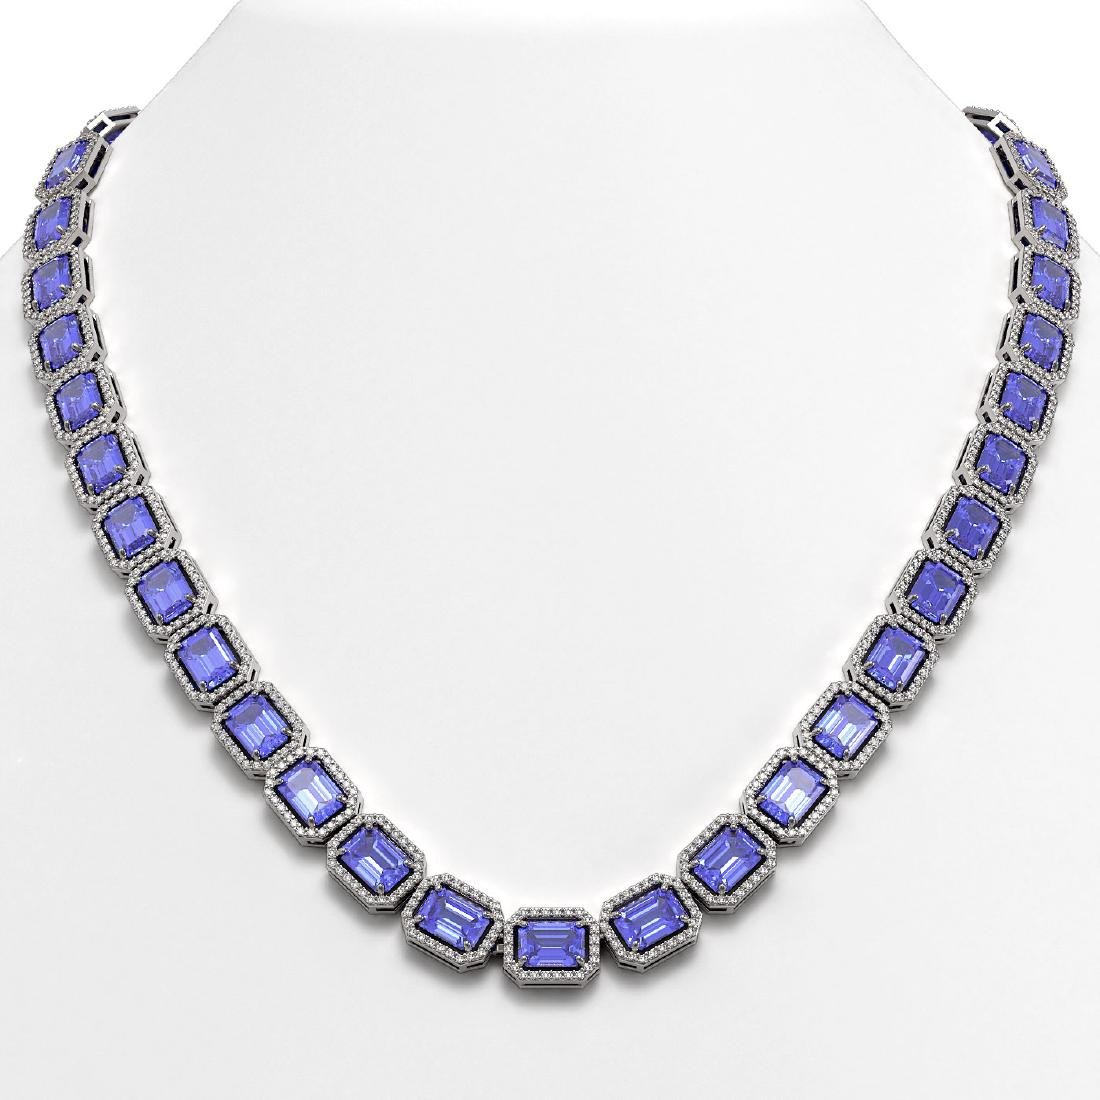 56.69 CTW Tanzanite & Diamond Halo Necklace 10K White